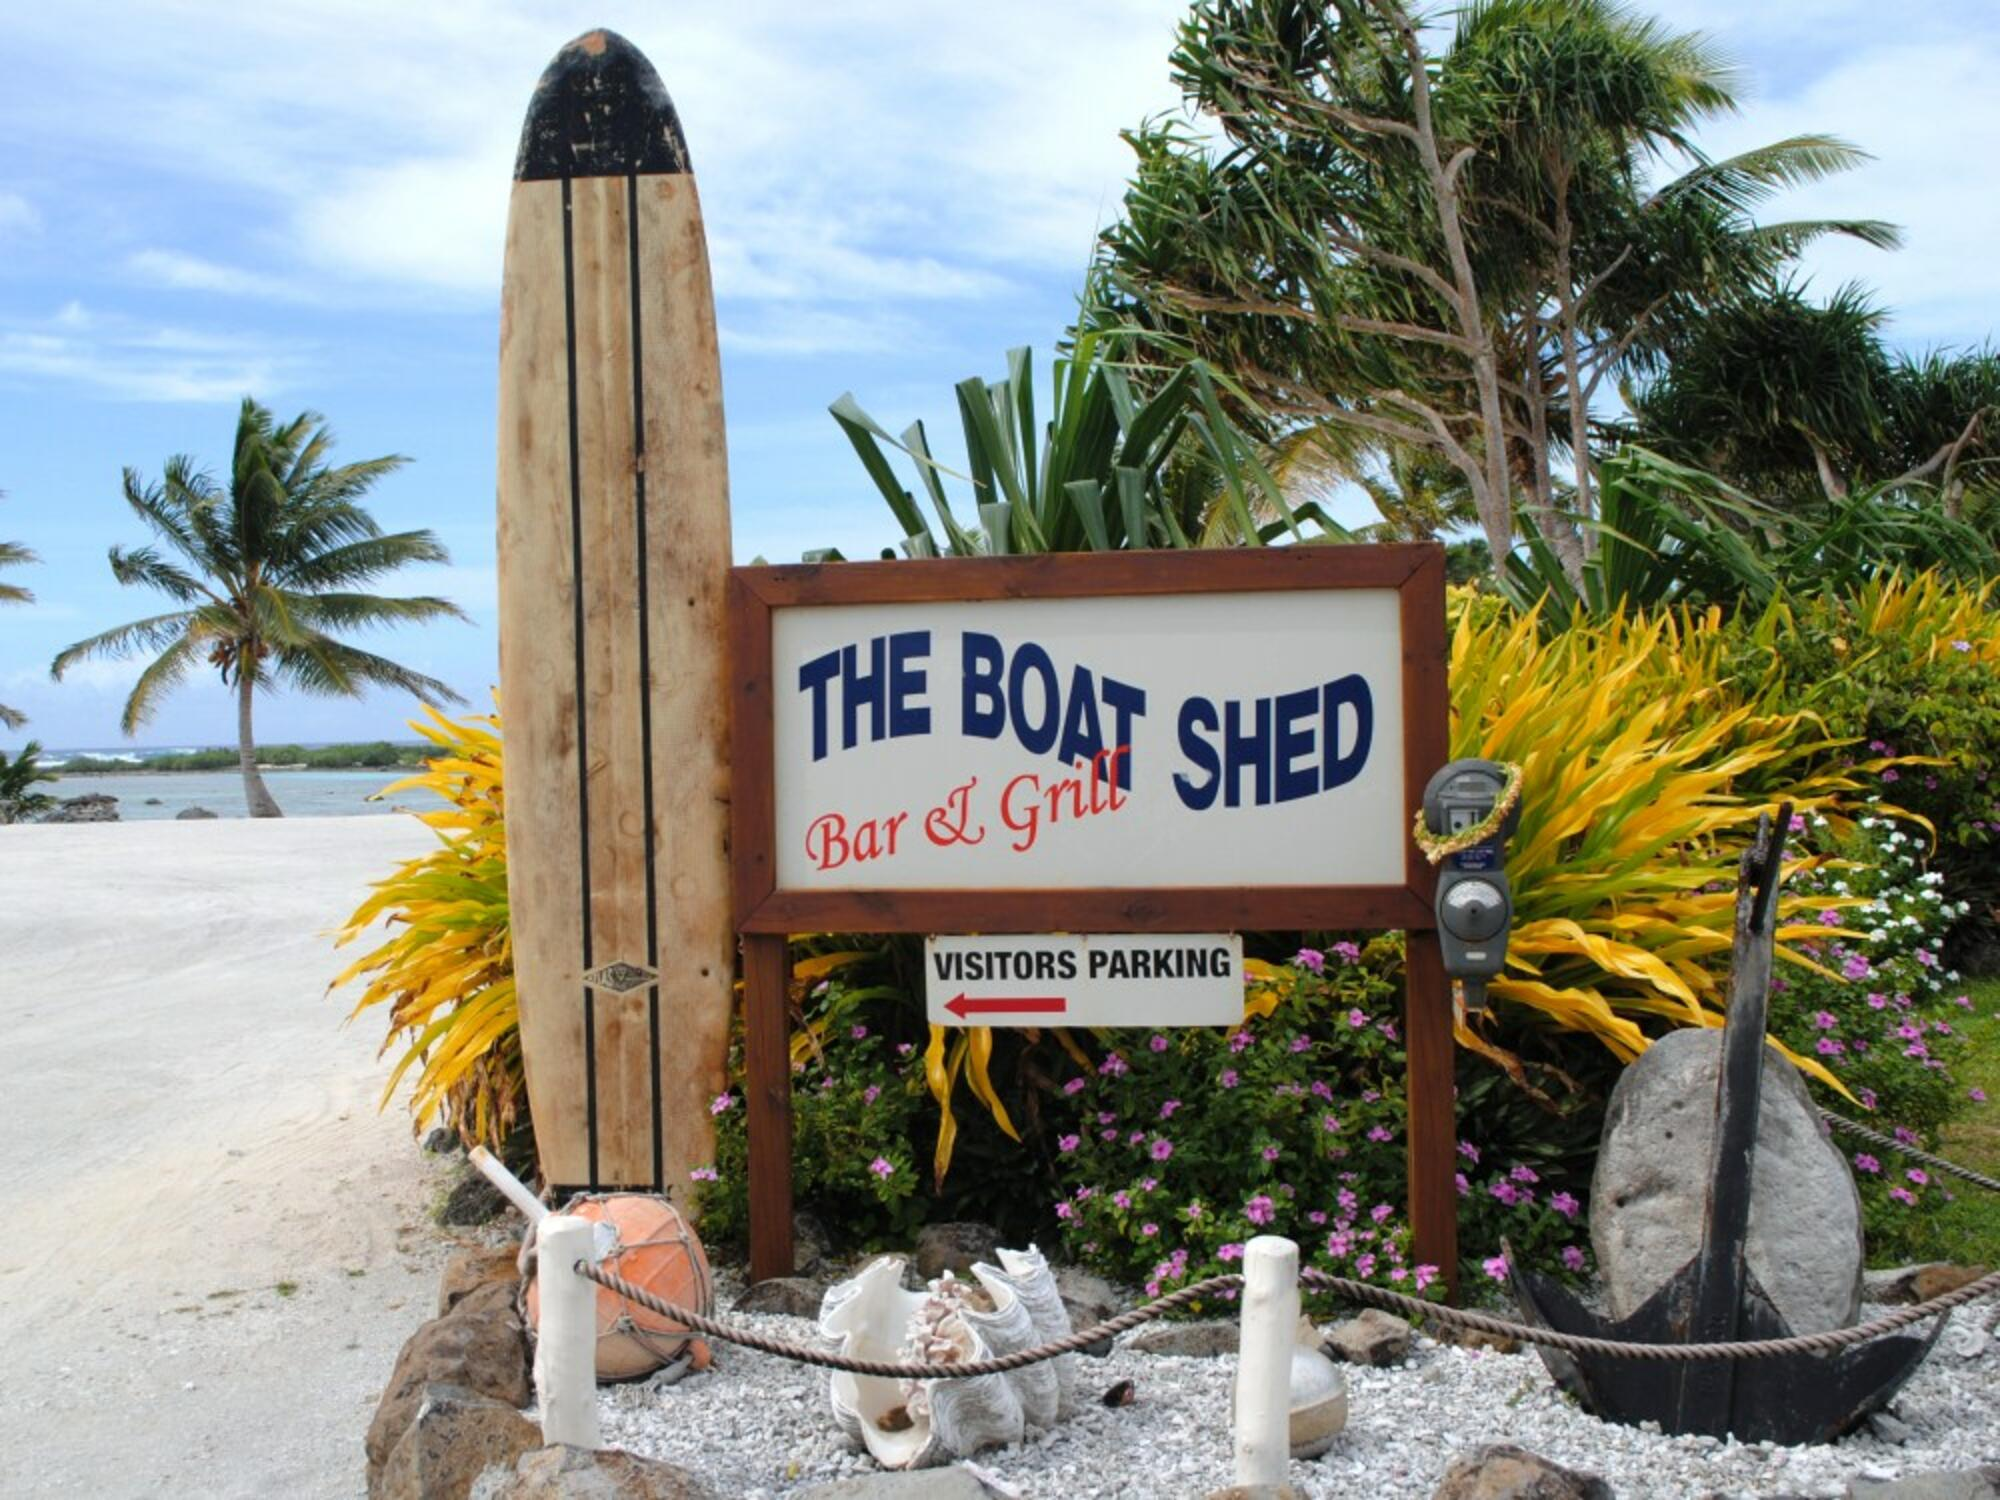 Dine at The Boat Shed Bar & Grill in Aitutaki